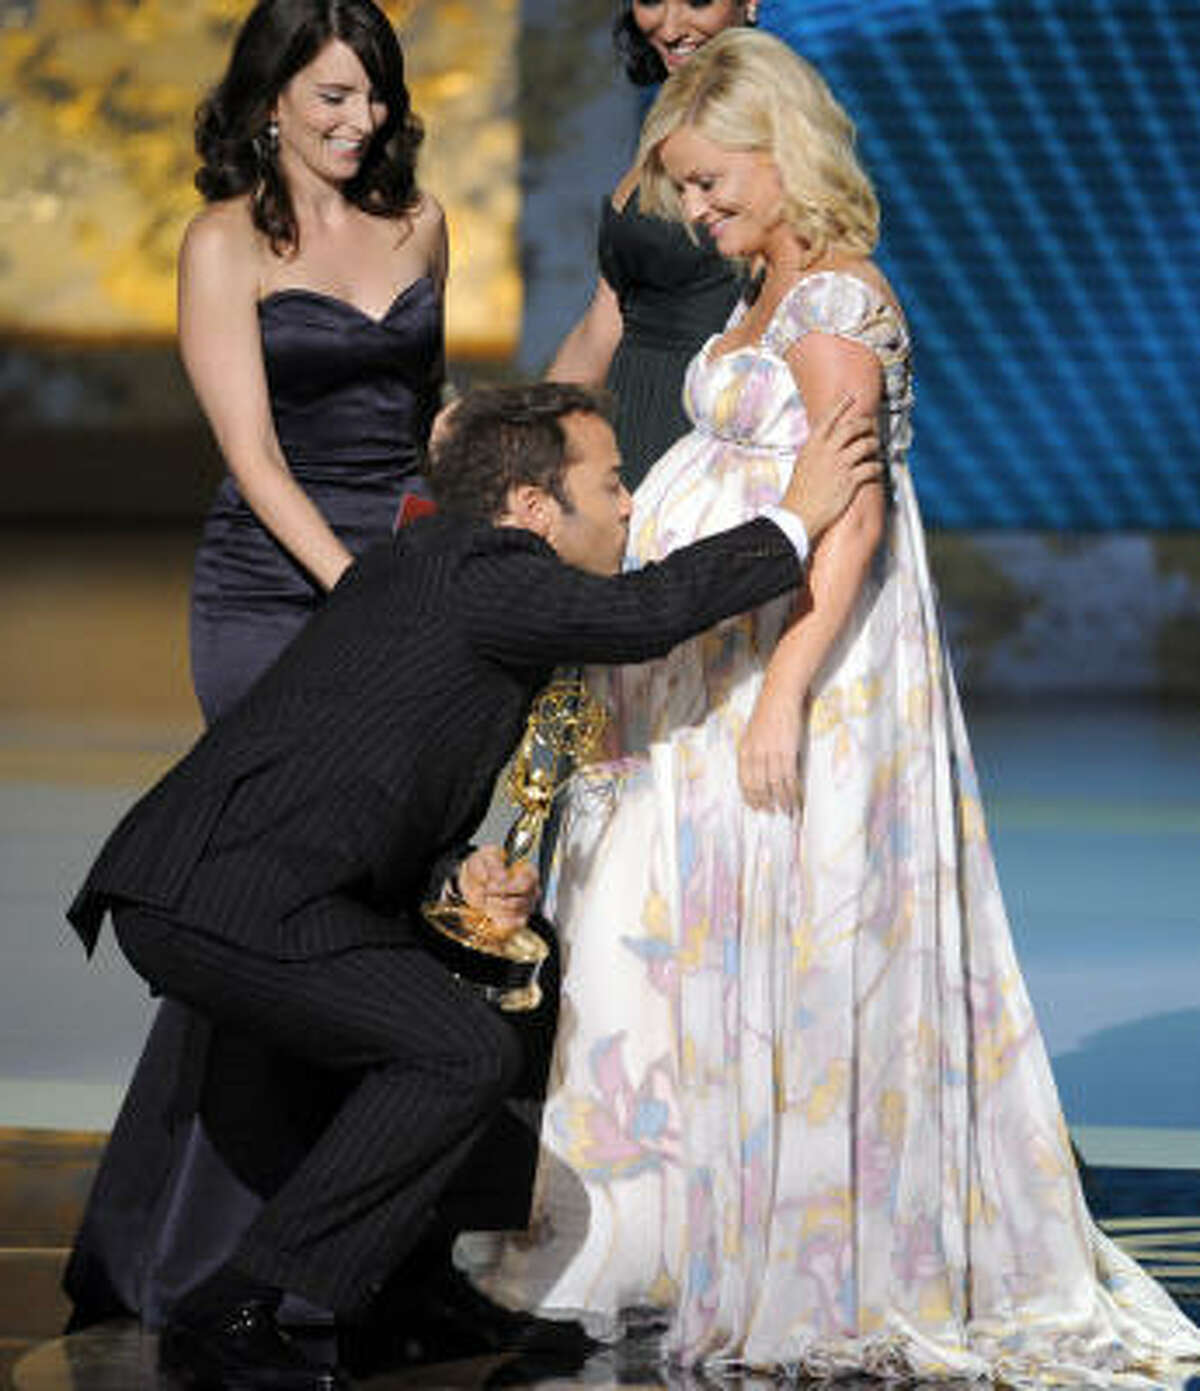 Pregnant bellies are beautiful and highly kissable. Here Jeremy Piven, of Entourage is seen kissing Amy Poehler's belly during the Emmy Awards. In the background is presenter Tina Fey.